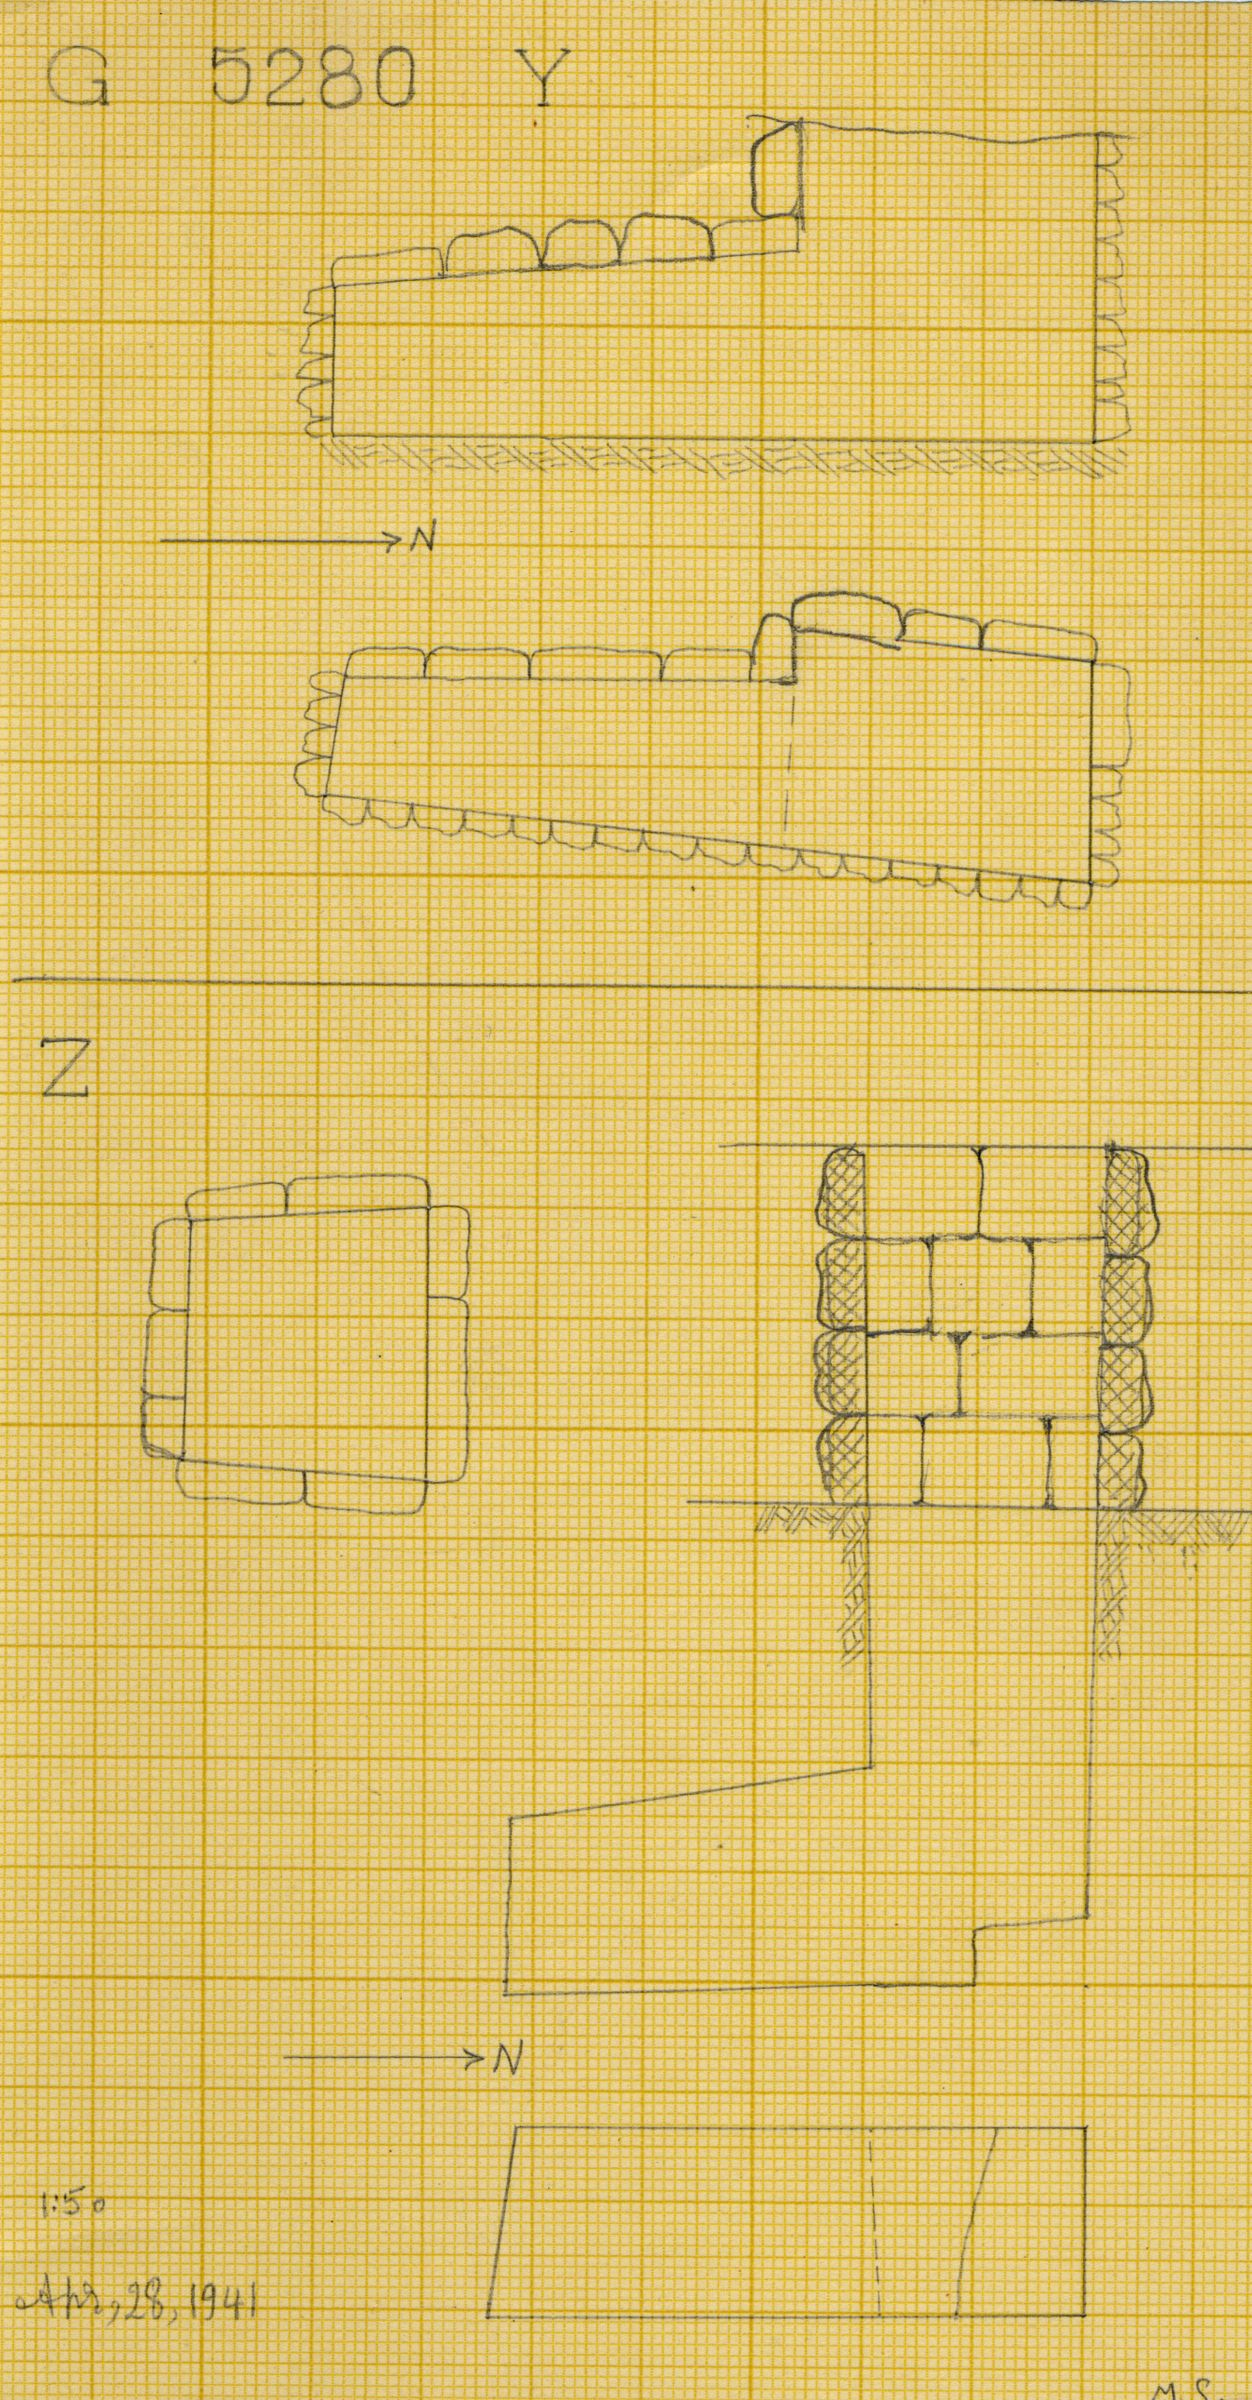 Maps and plans: G 2320 = G 5280, Shaft Y and Z